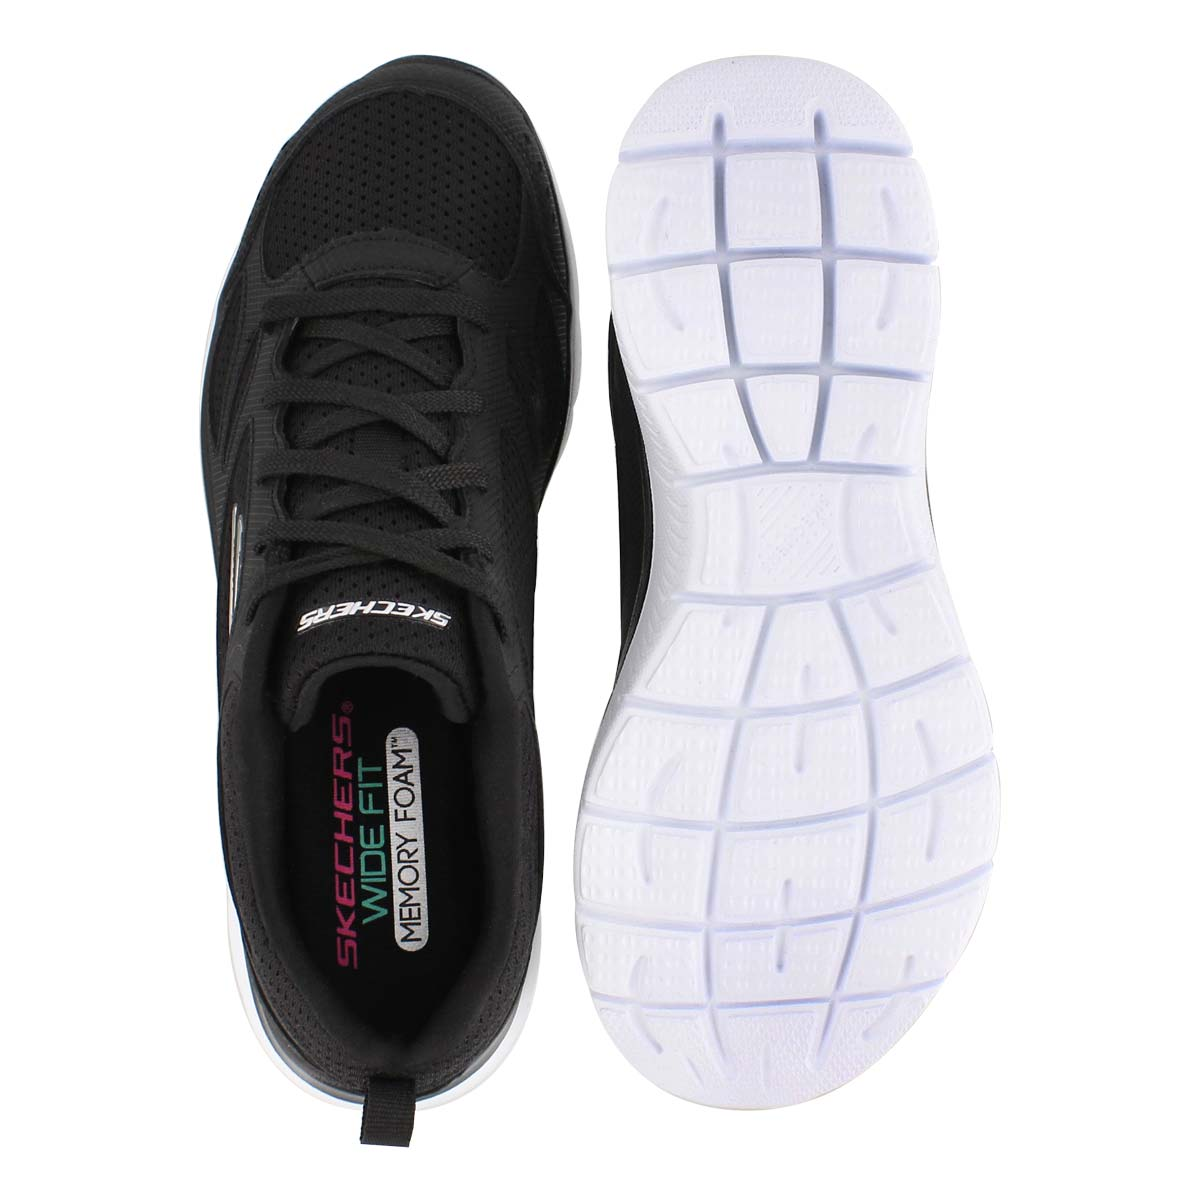 Lds Summits Suited blk/wht snkr- wide